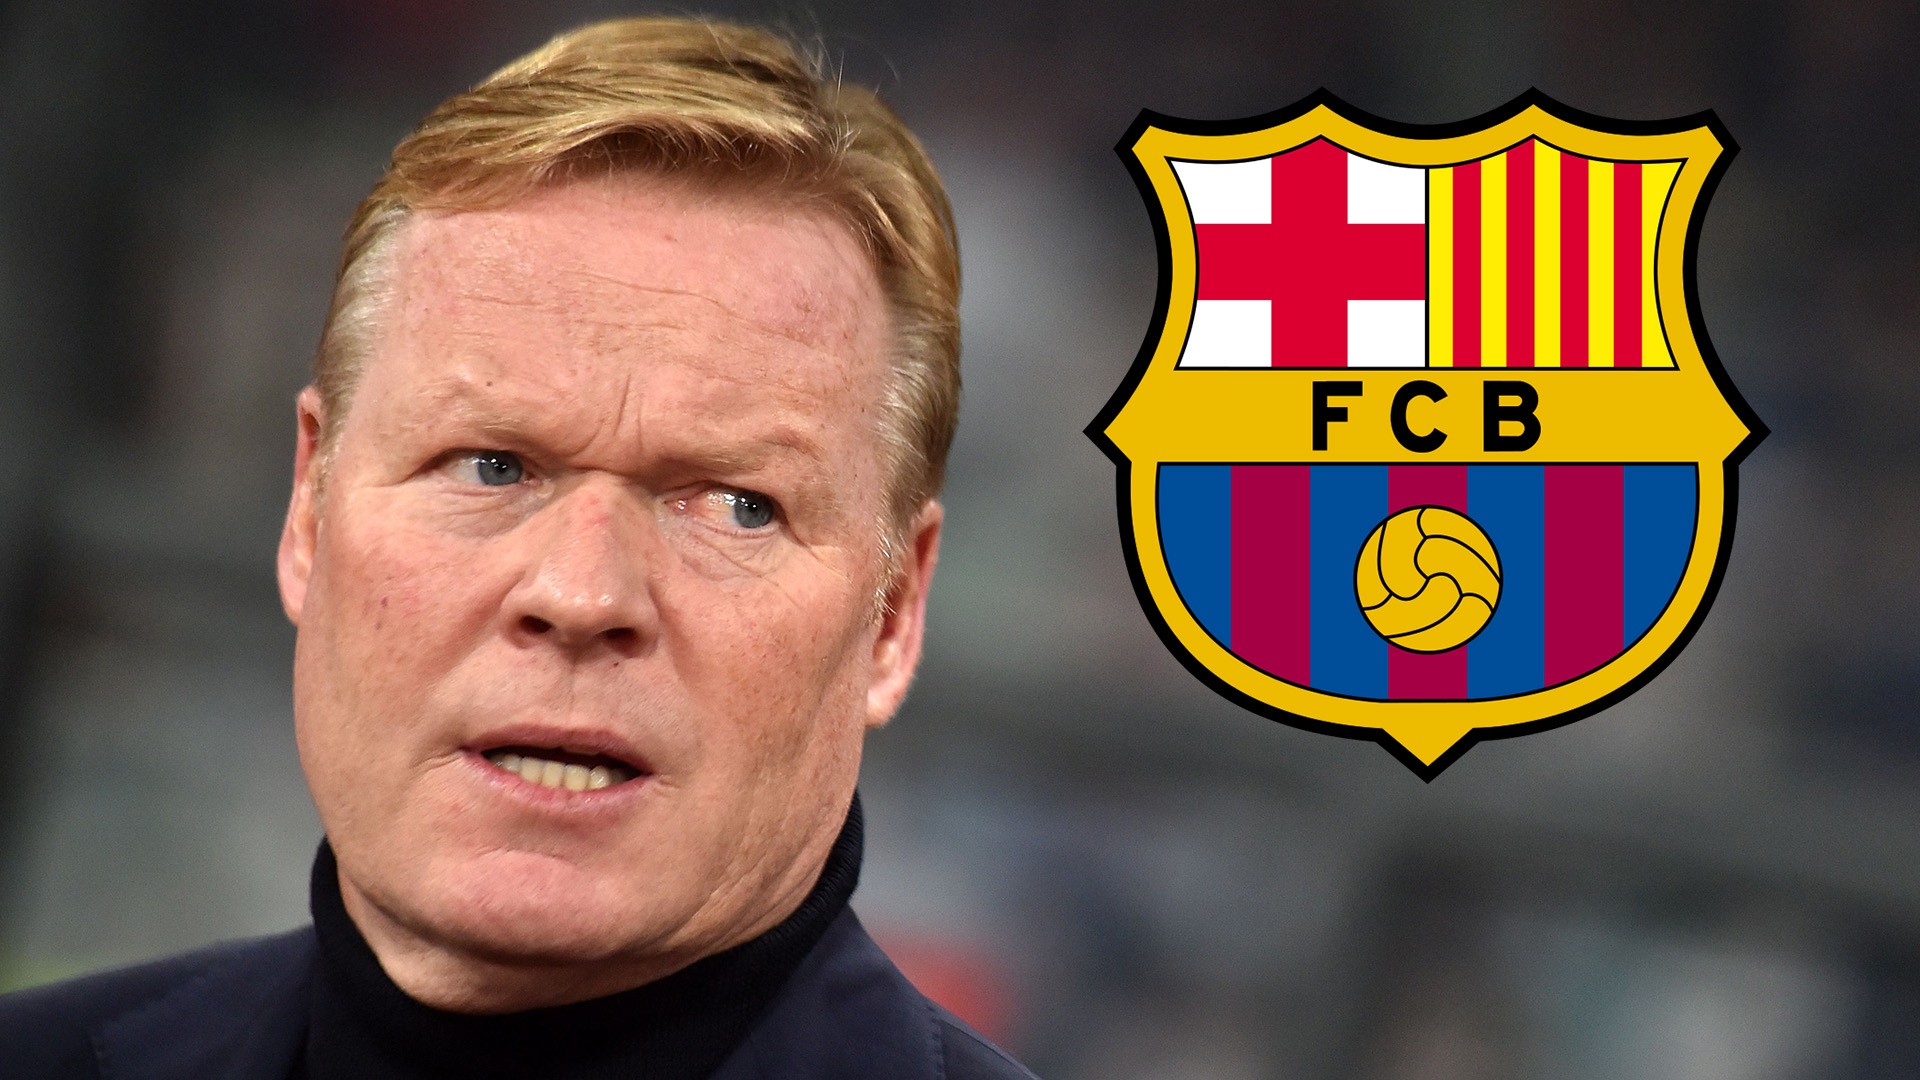 Netherlands edgy on Ronald Koeman future due to Barcelona clause